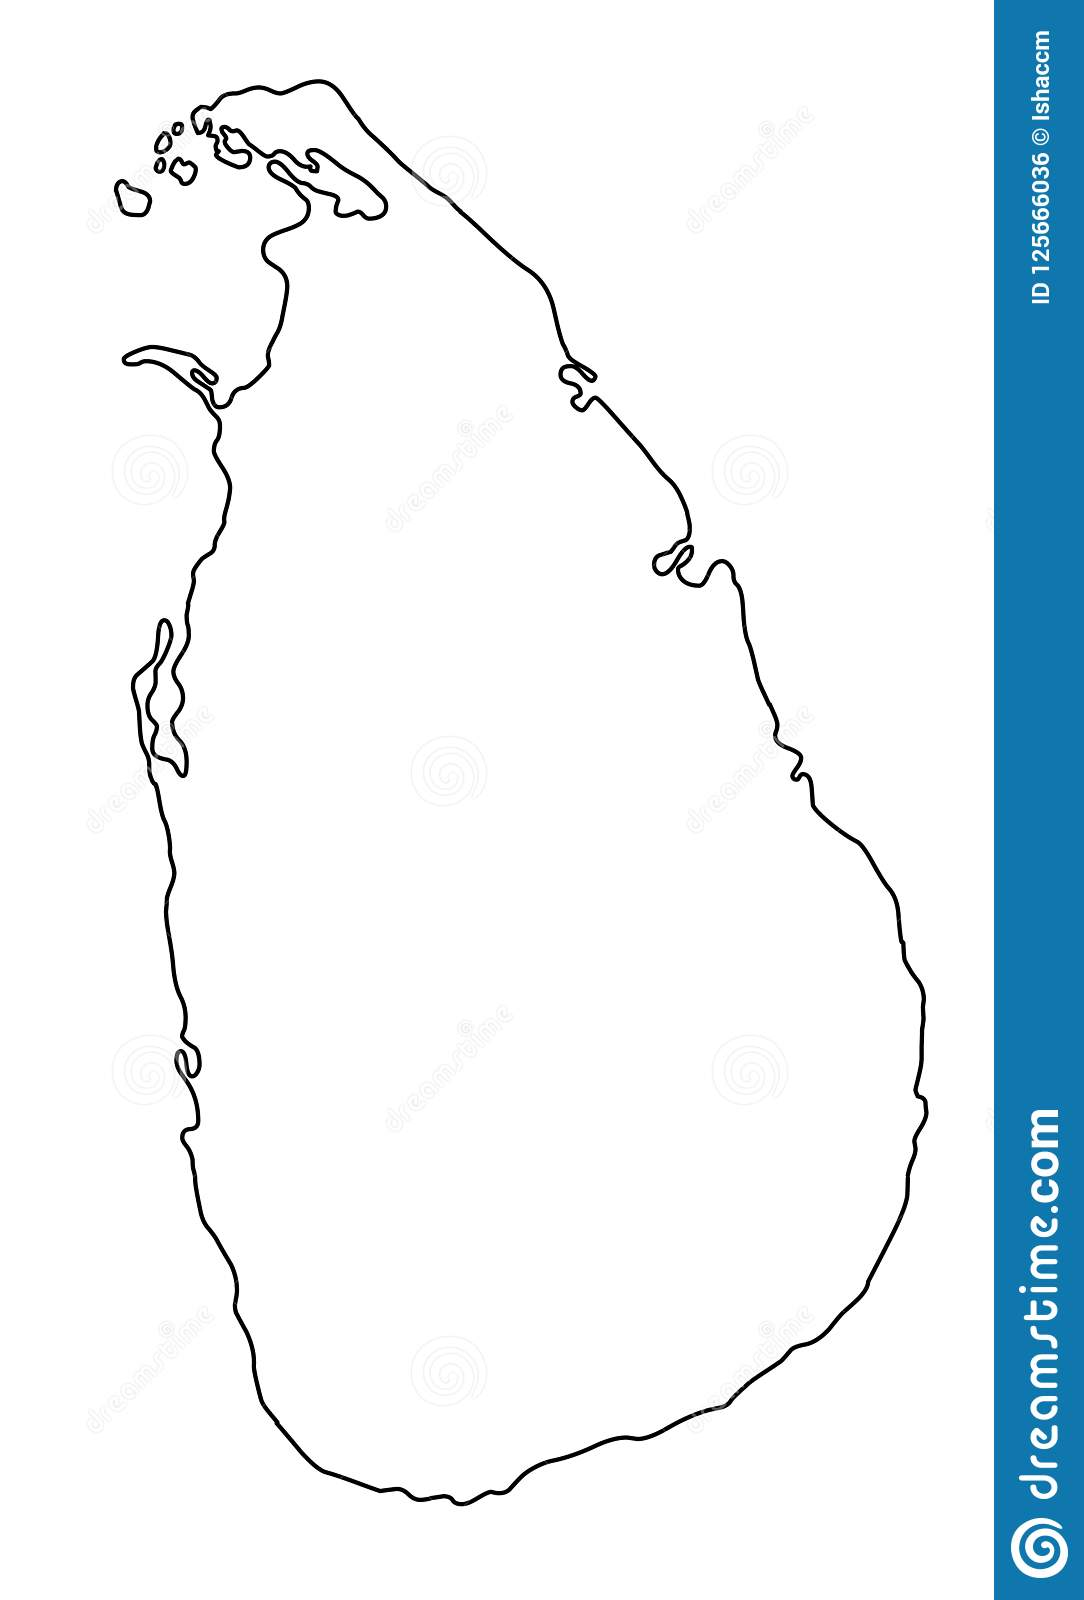 Sri Lanka Map Outline Vector Illustration Stock Vector ...